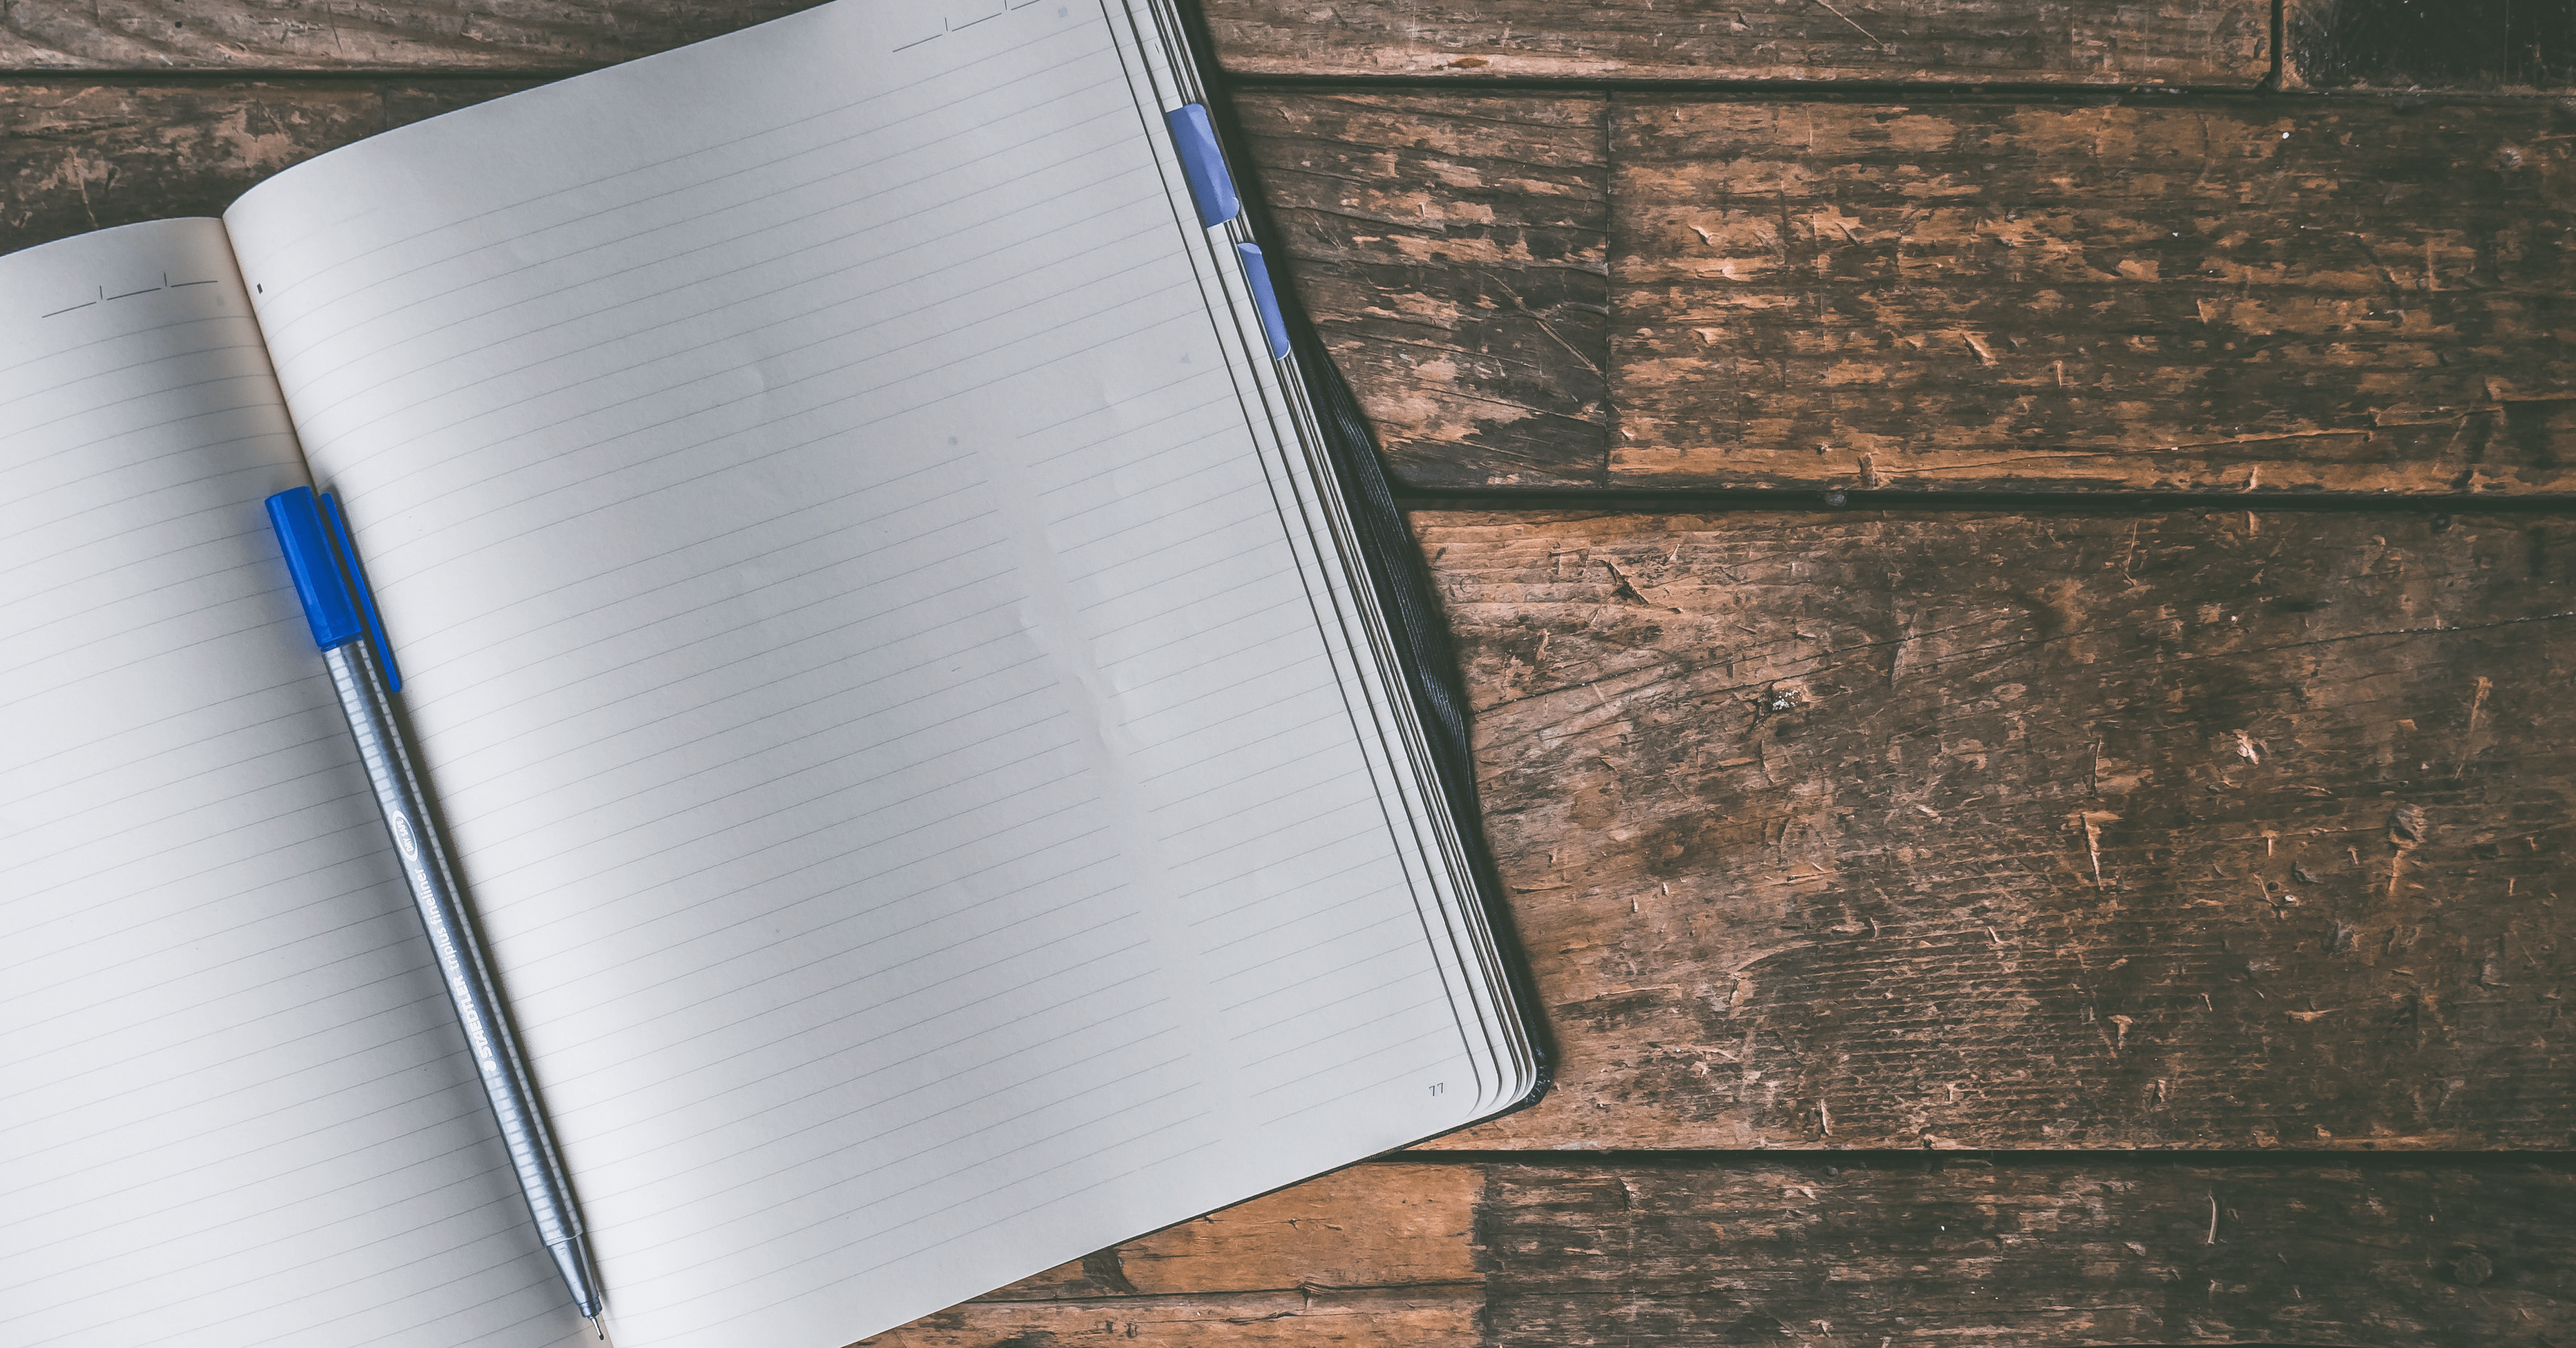 How to Get Rid of Negative Thoughts with a Simple Journaling Trick